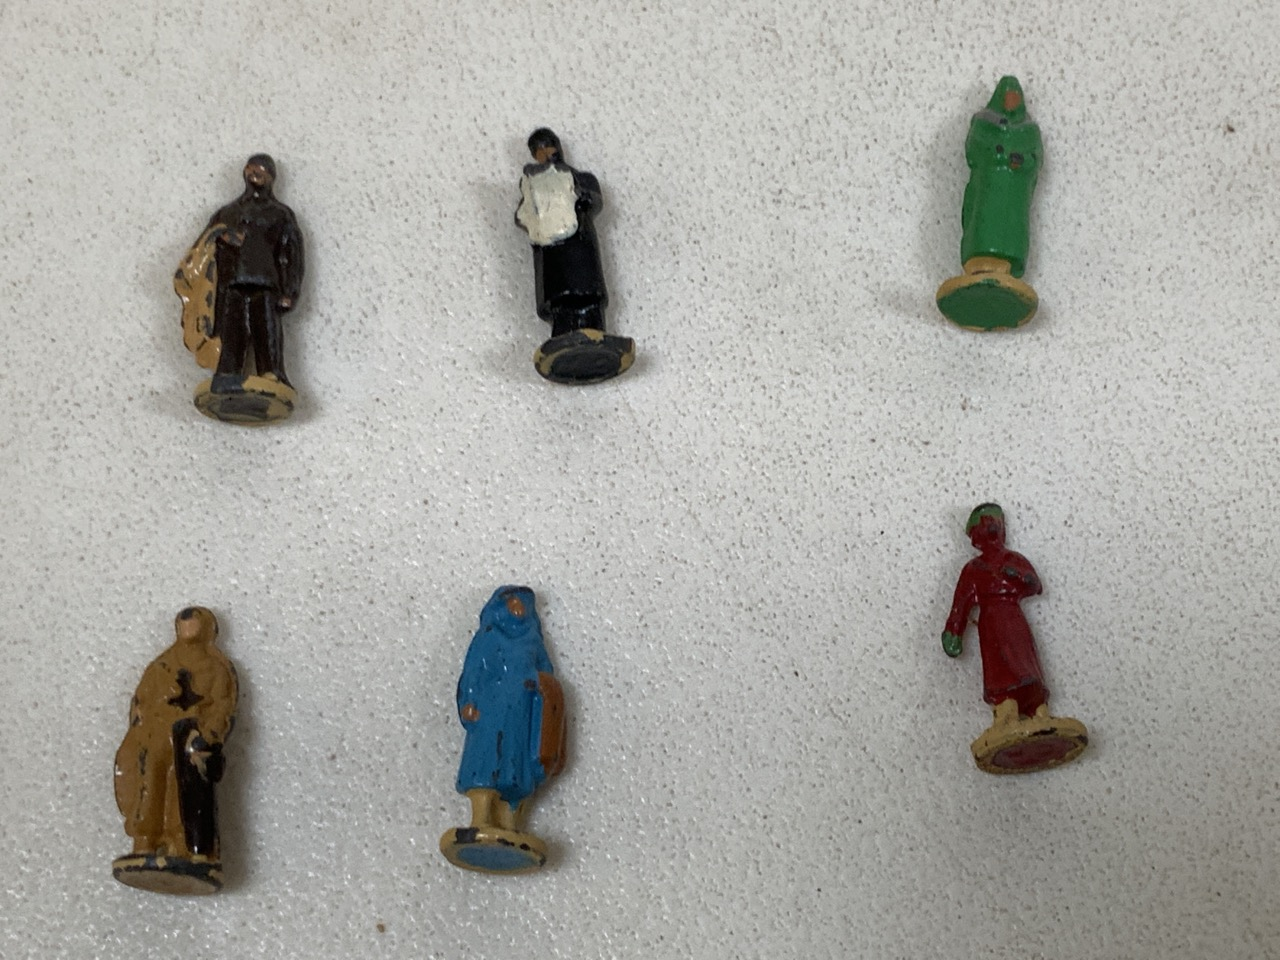 Dinky toy miniature passengers for gauge 00 railway in original box - six pieces. Height approx 2cm - Image 2 of 2